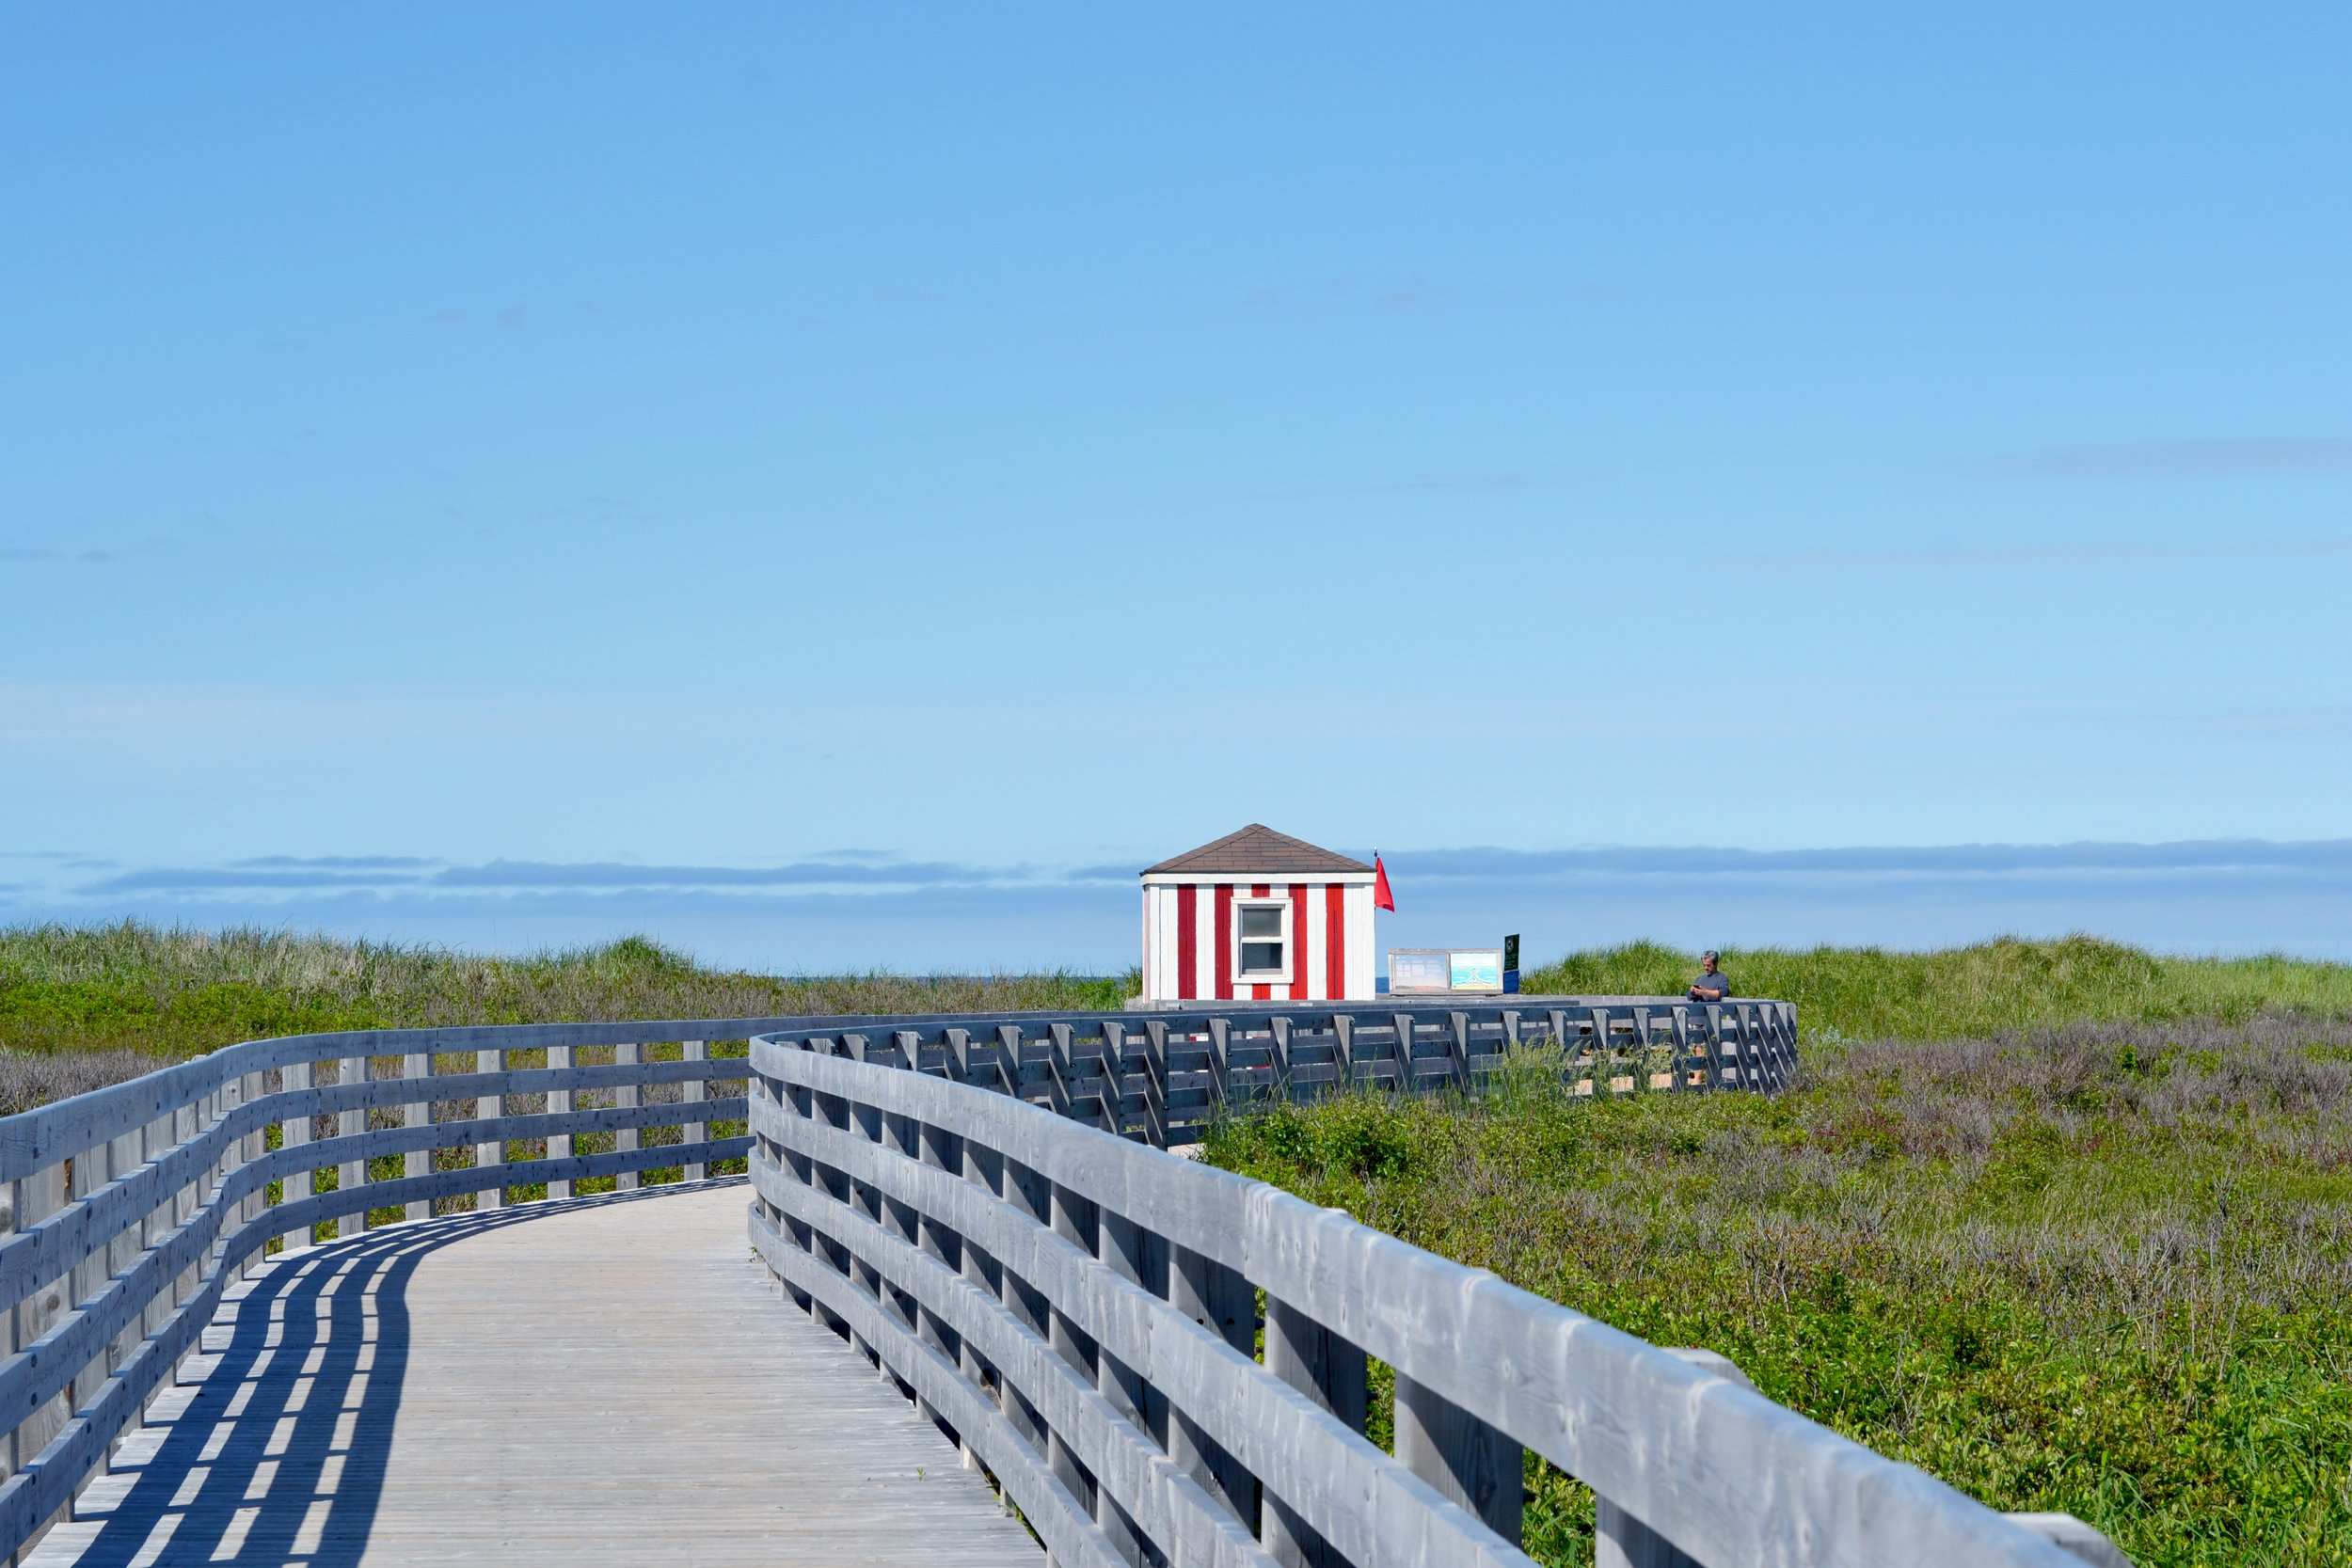 boardwalk-to-lifeguard-house.jpg